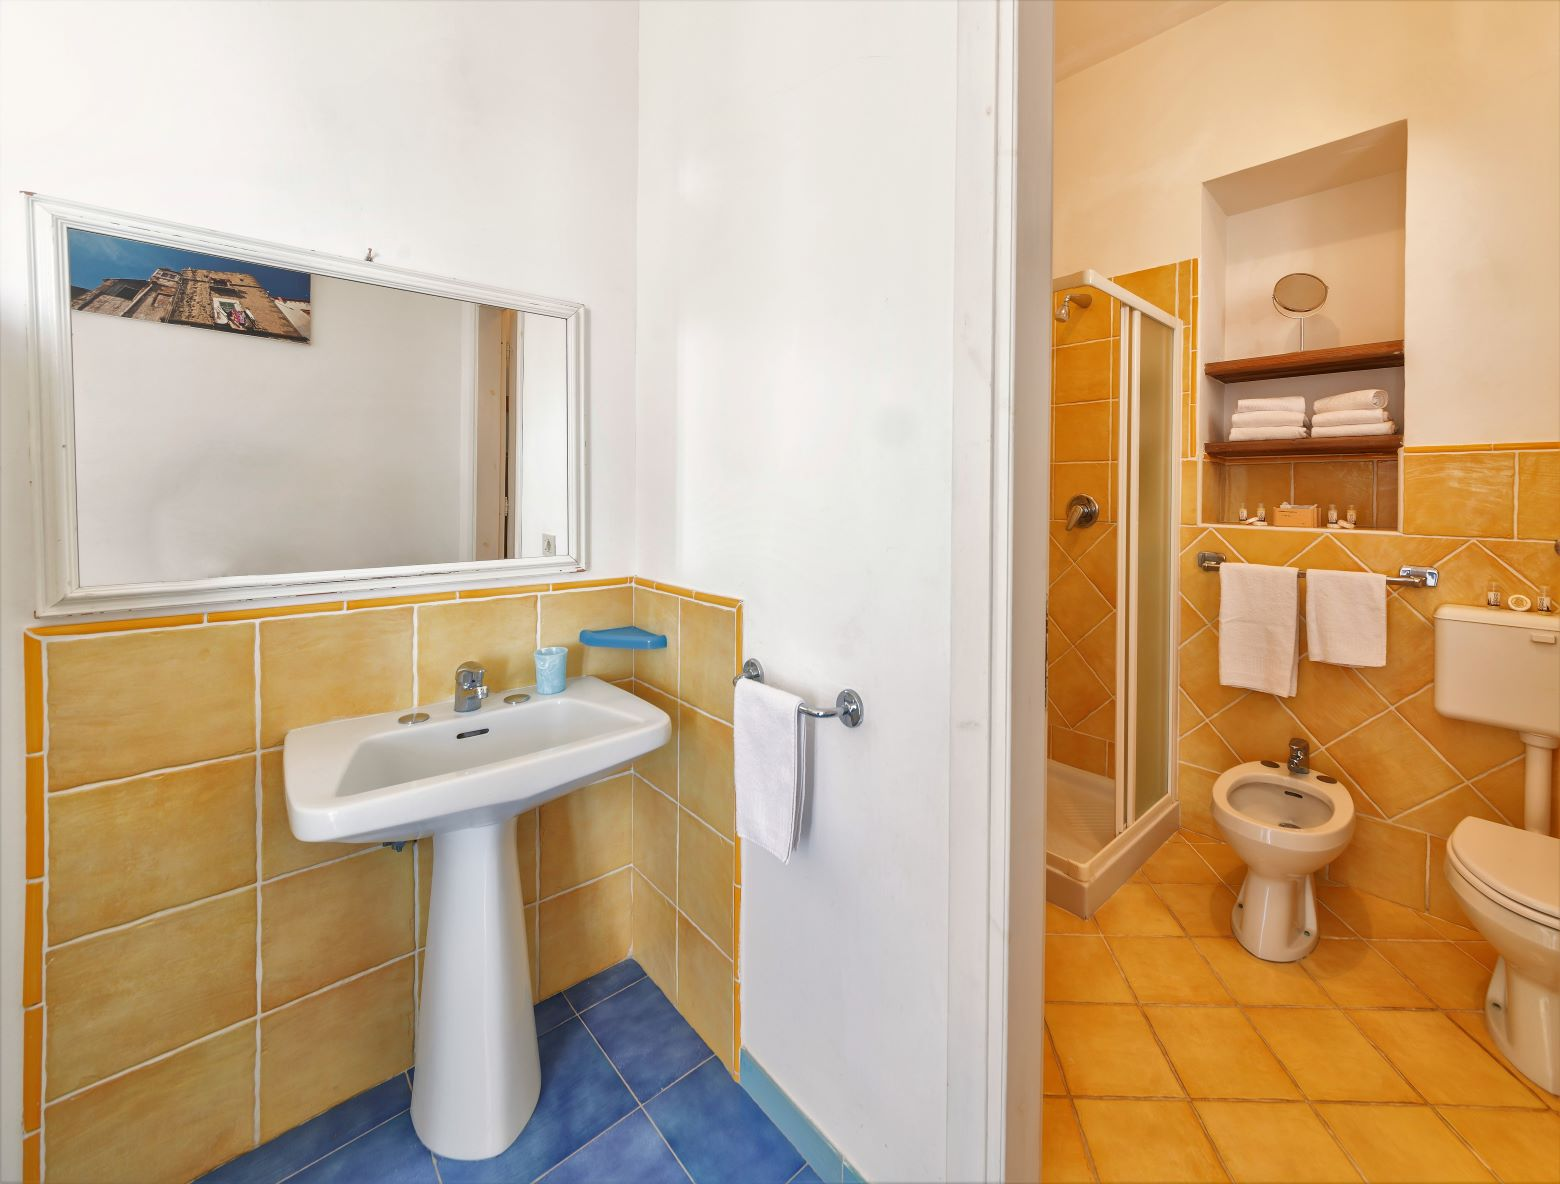 Ischia Room Apartment BB Self catering terrace